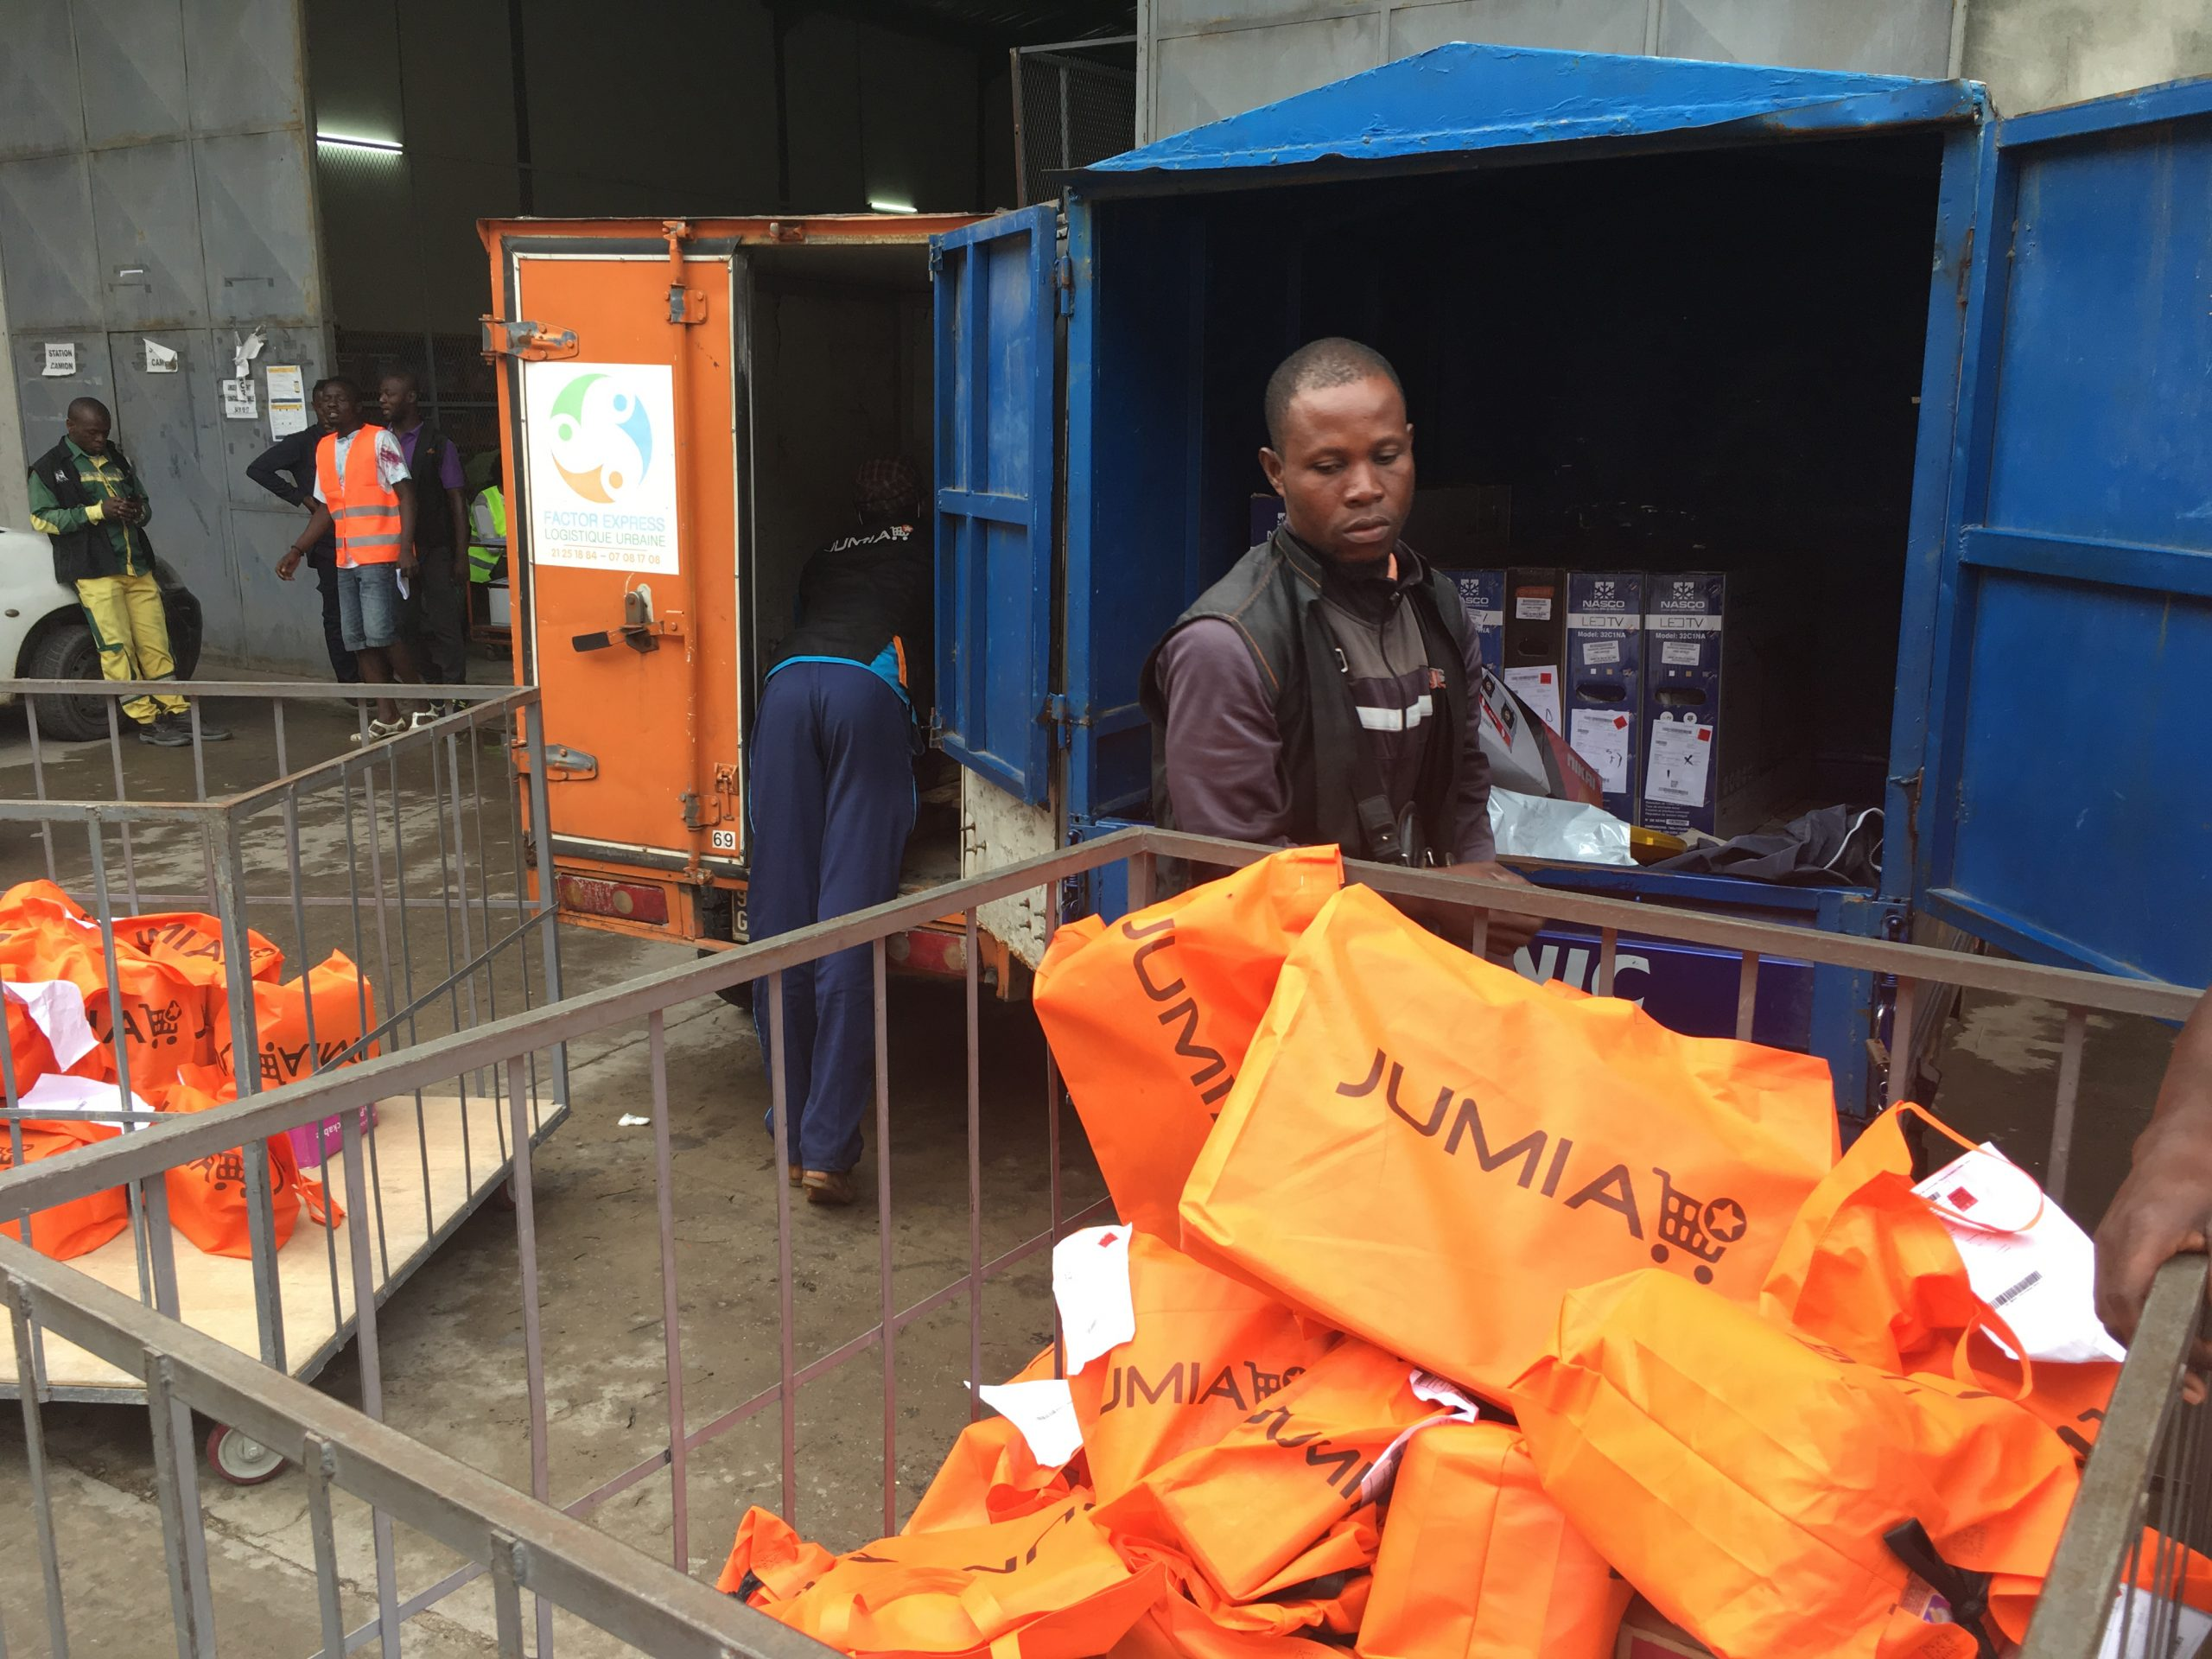 Fact check: Sealed Jumia warehouse reopened, deliveries still ongoing